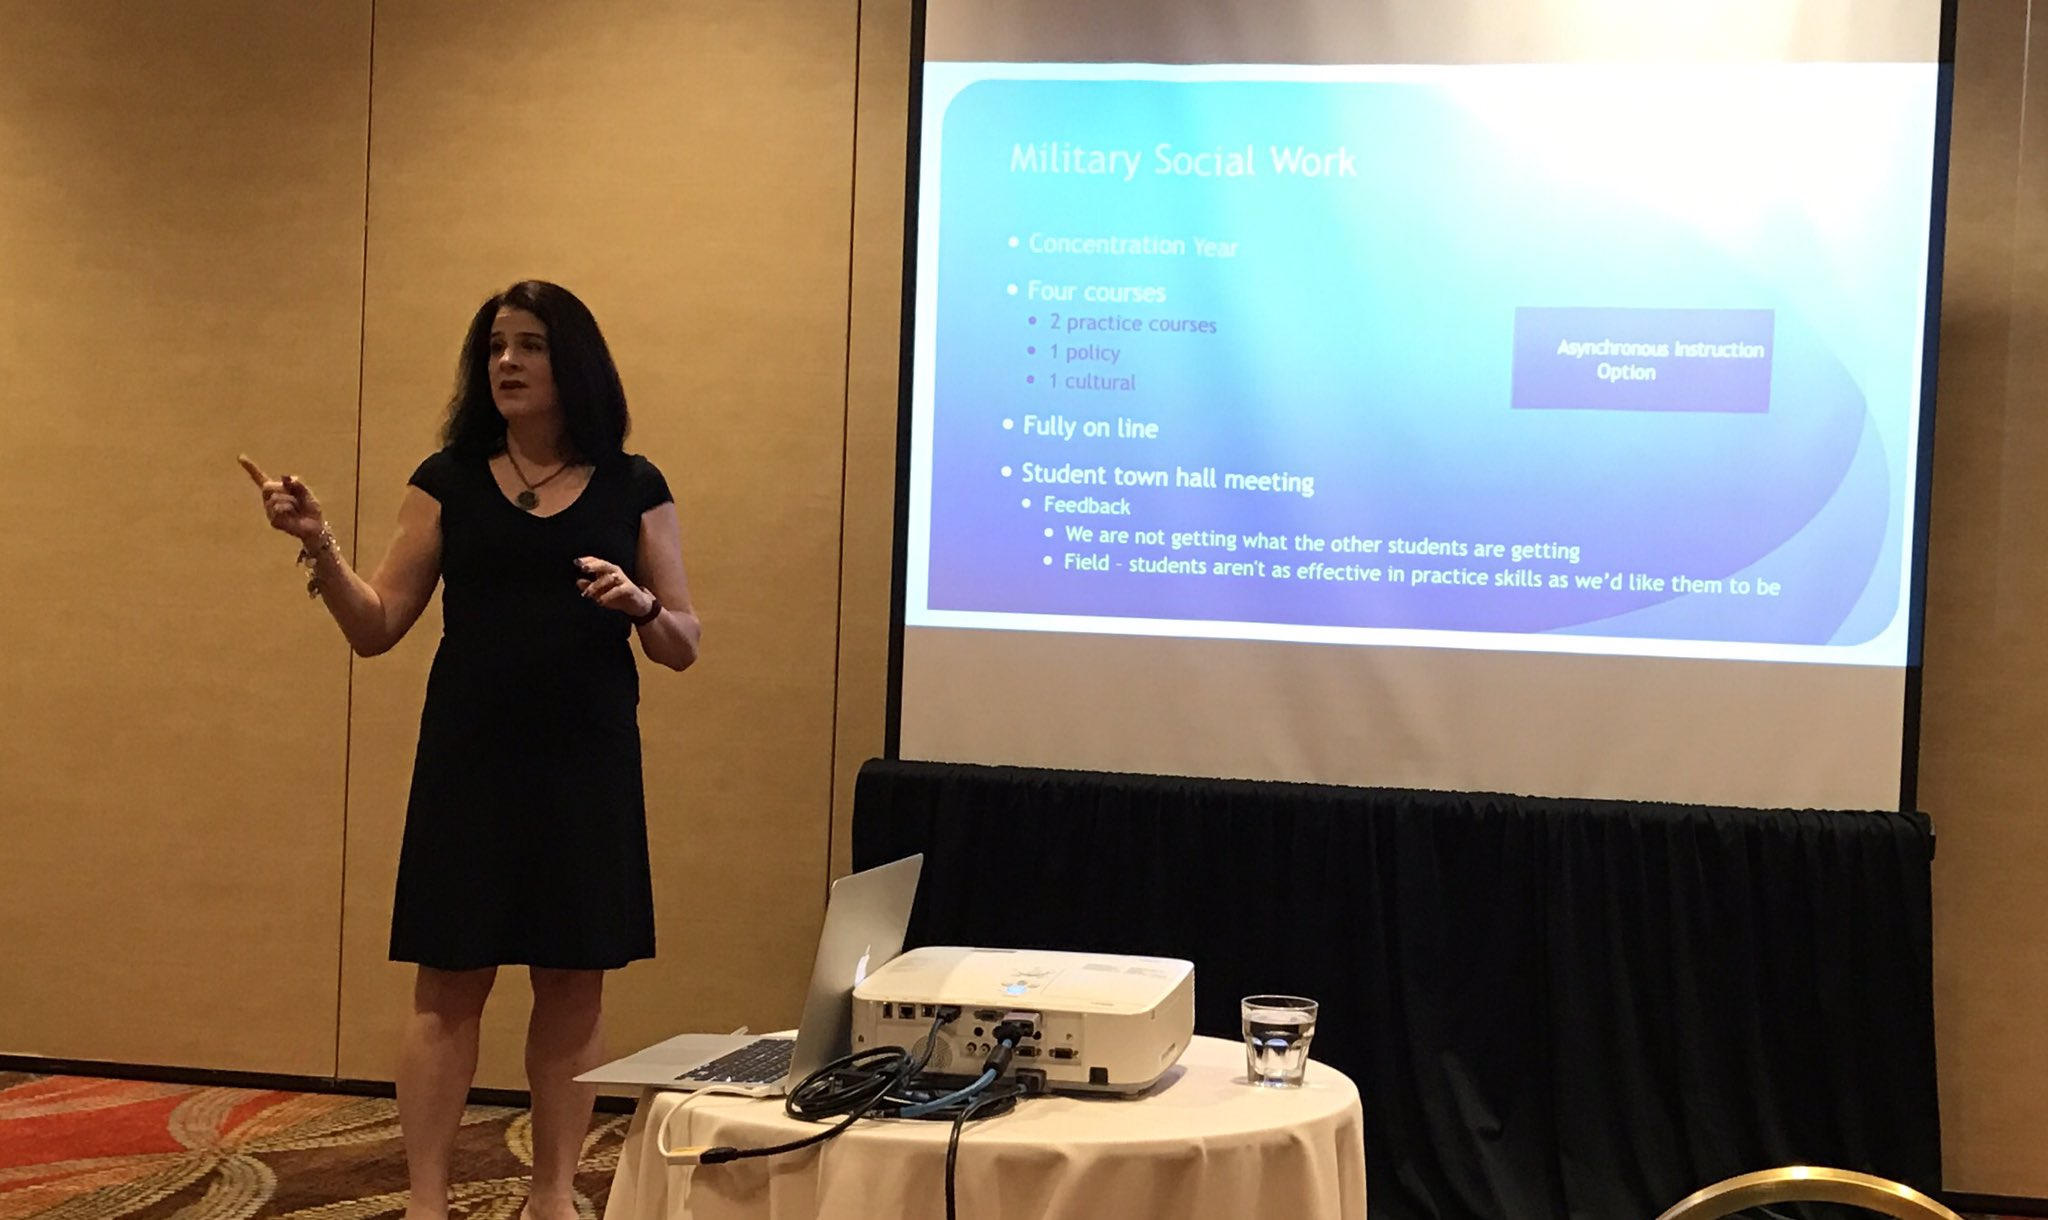 """Blended practice for military concentration #SWDE2017 @SWDEConference @mmt98 """"we need to honor our digitally immigrant colleagues."""" https://t.co/R9WwvB1Bie"""